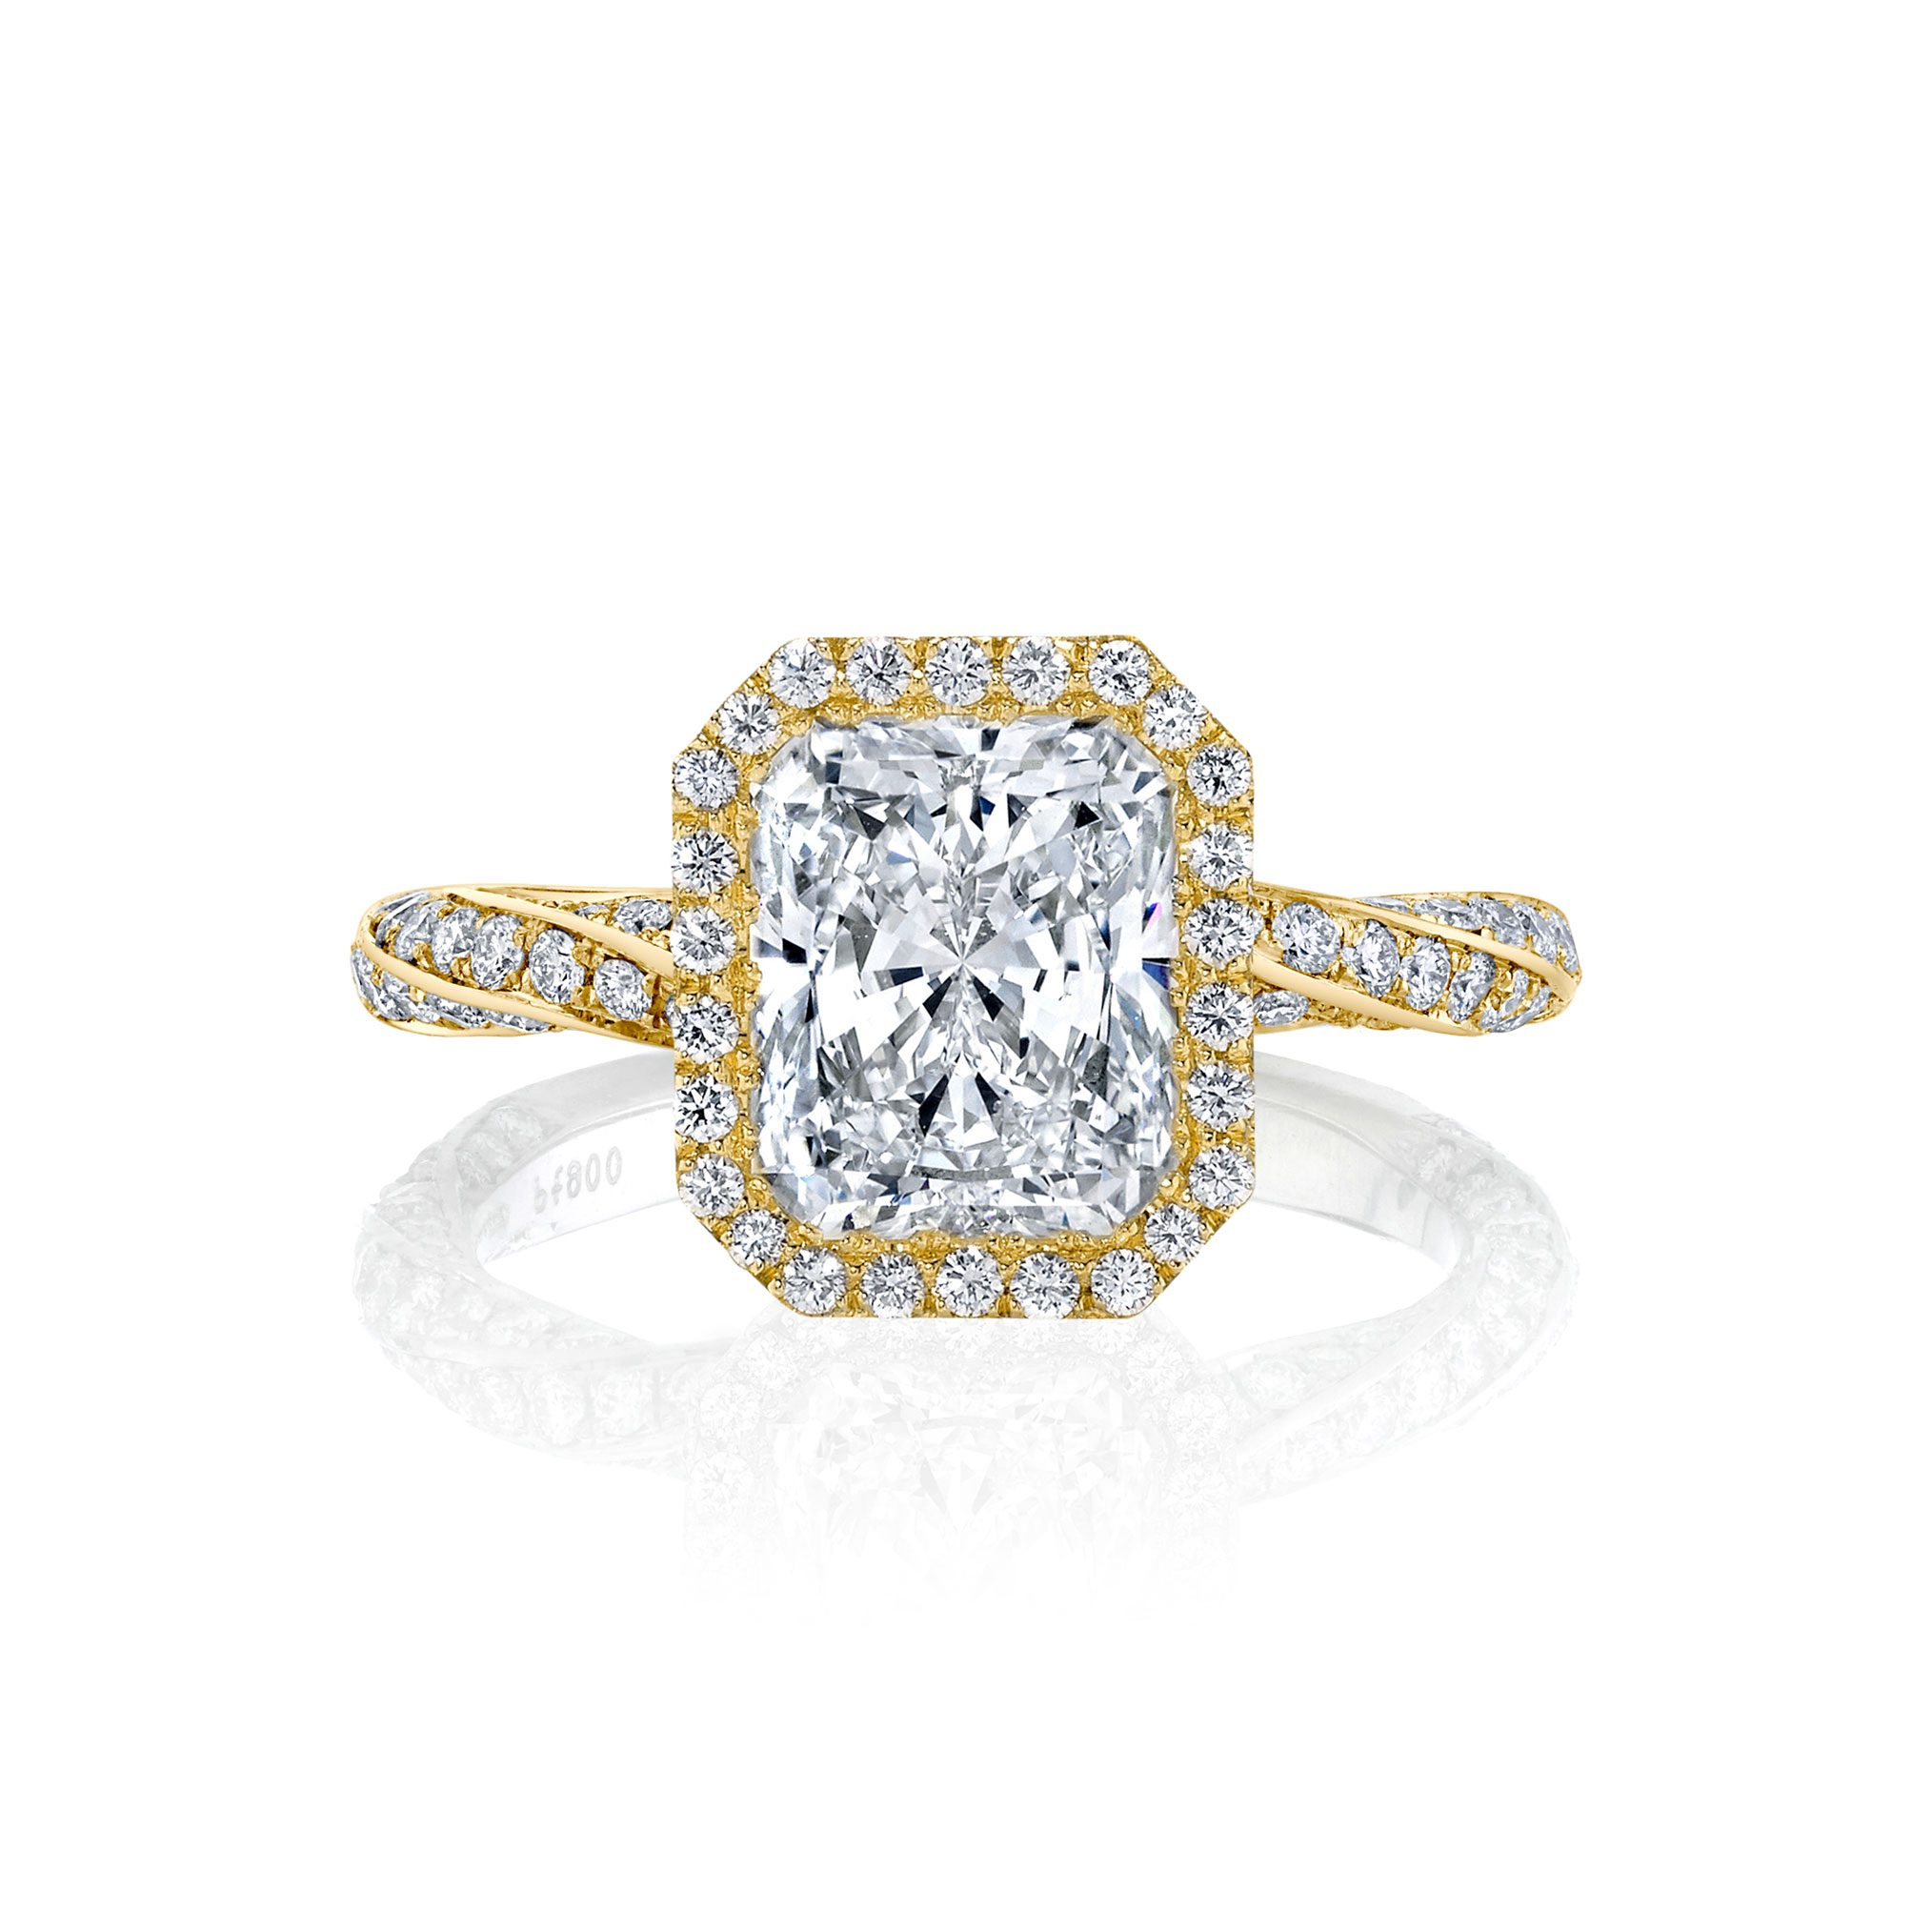 Camille Seamless Halo® Engagement Ring Radiant Cut with 18k yellow gold twisted pavé band